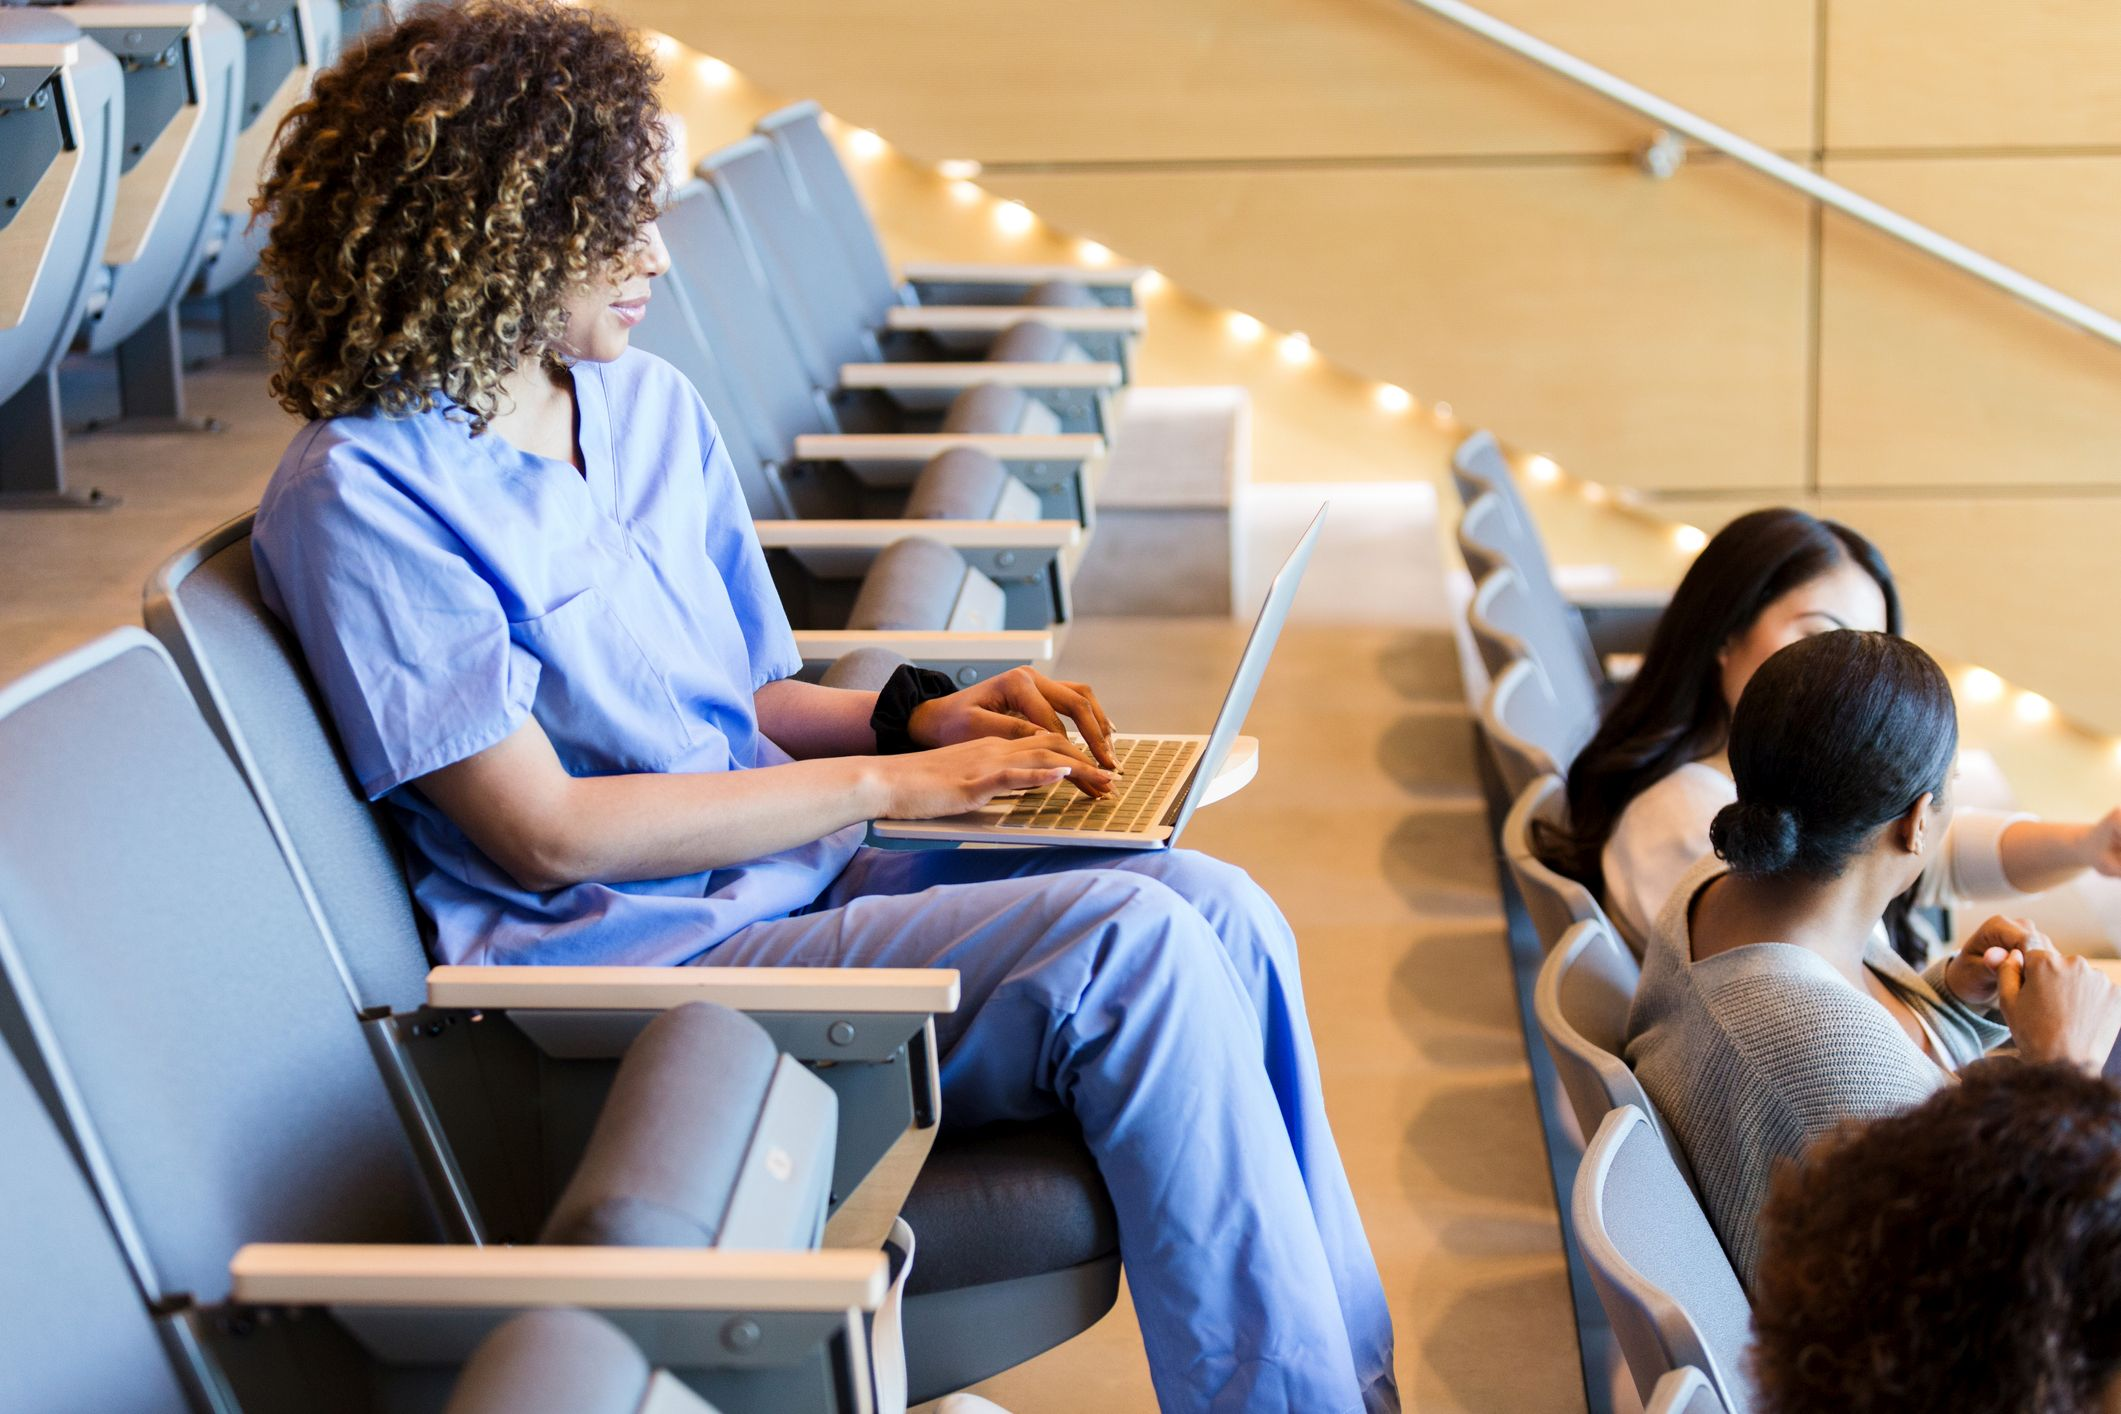 Woman taking notes in medical school